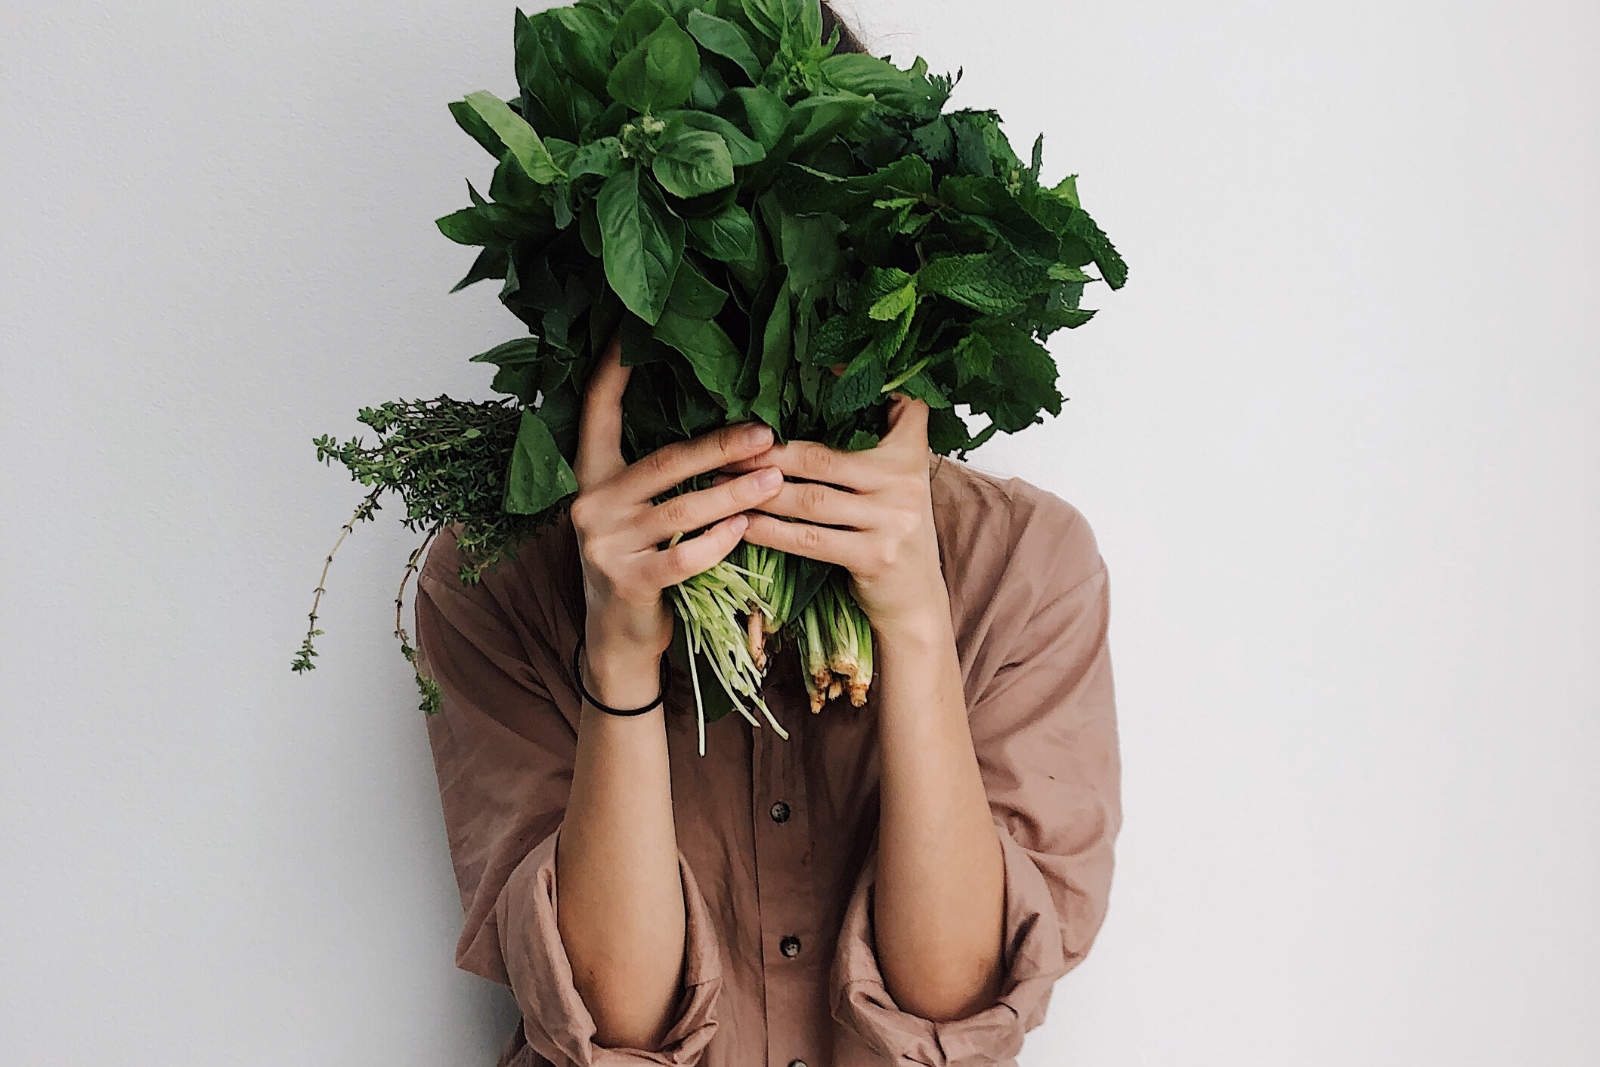 Woman Holding Vegetable | What Are The Main Vegan Health Benefits (and Drawbacks)?